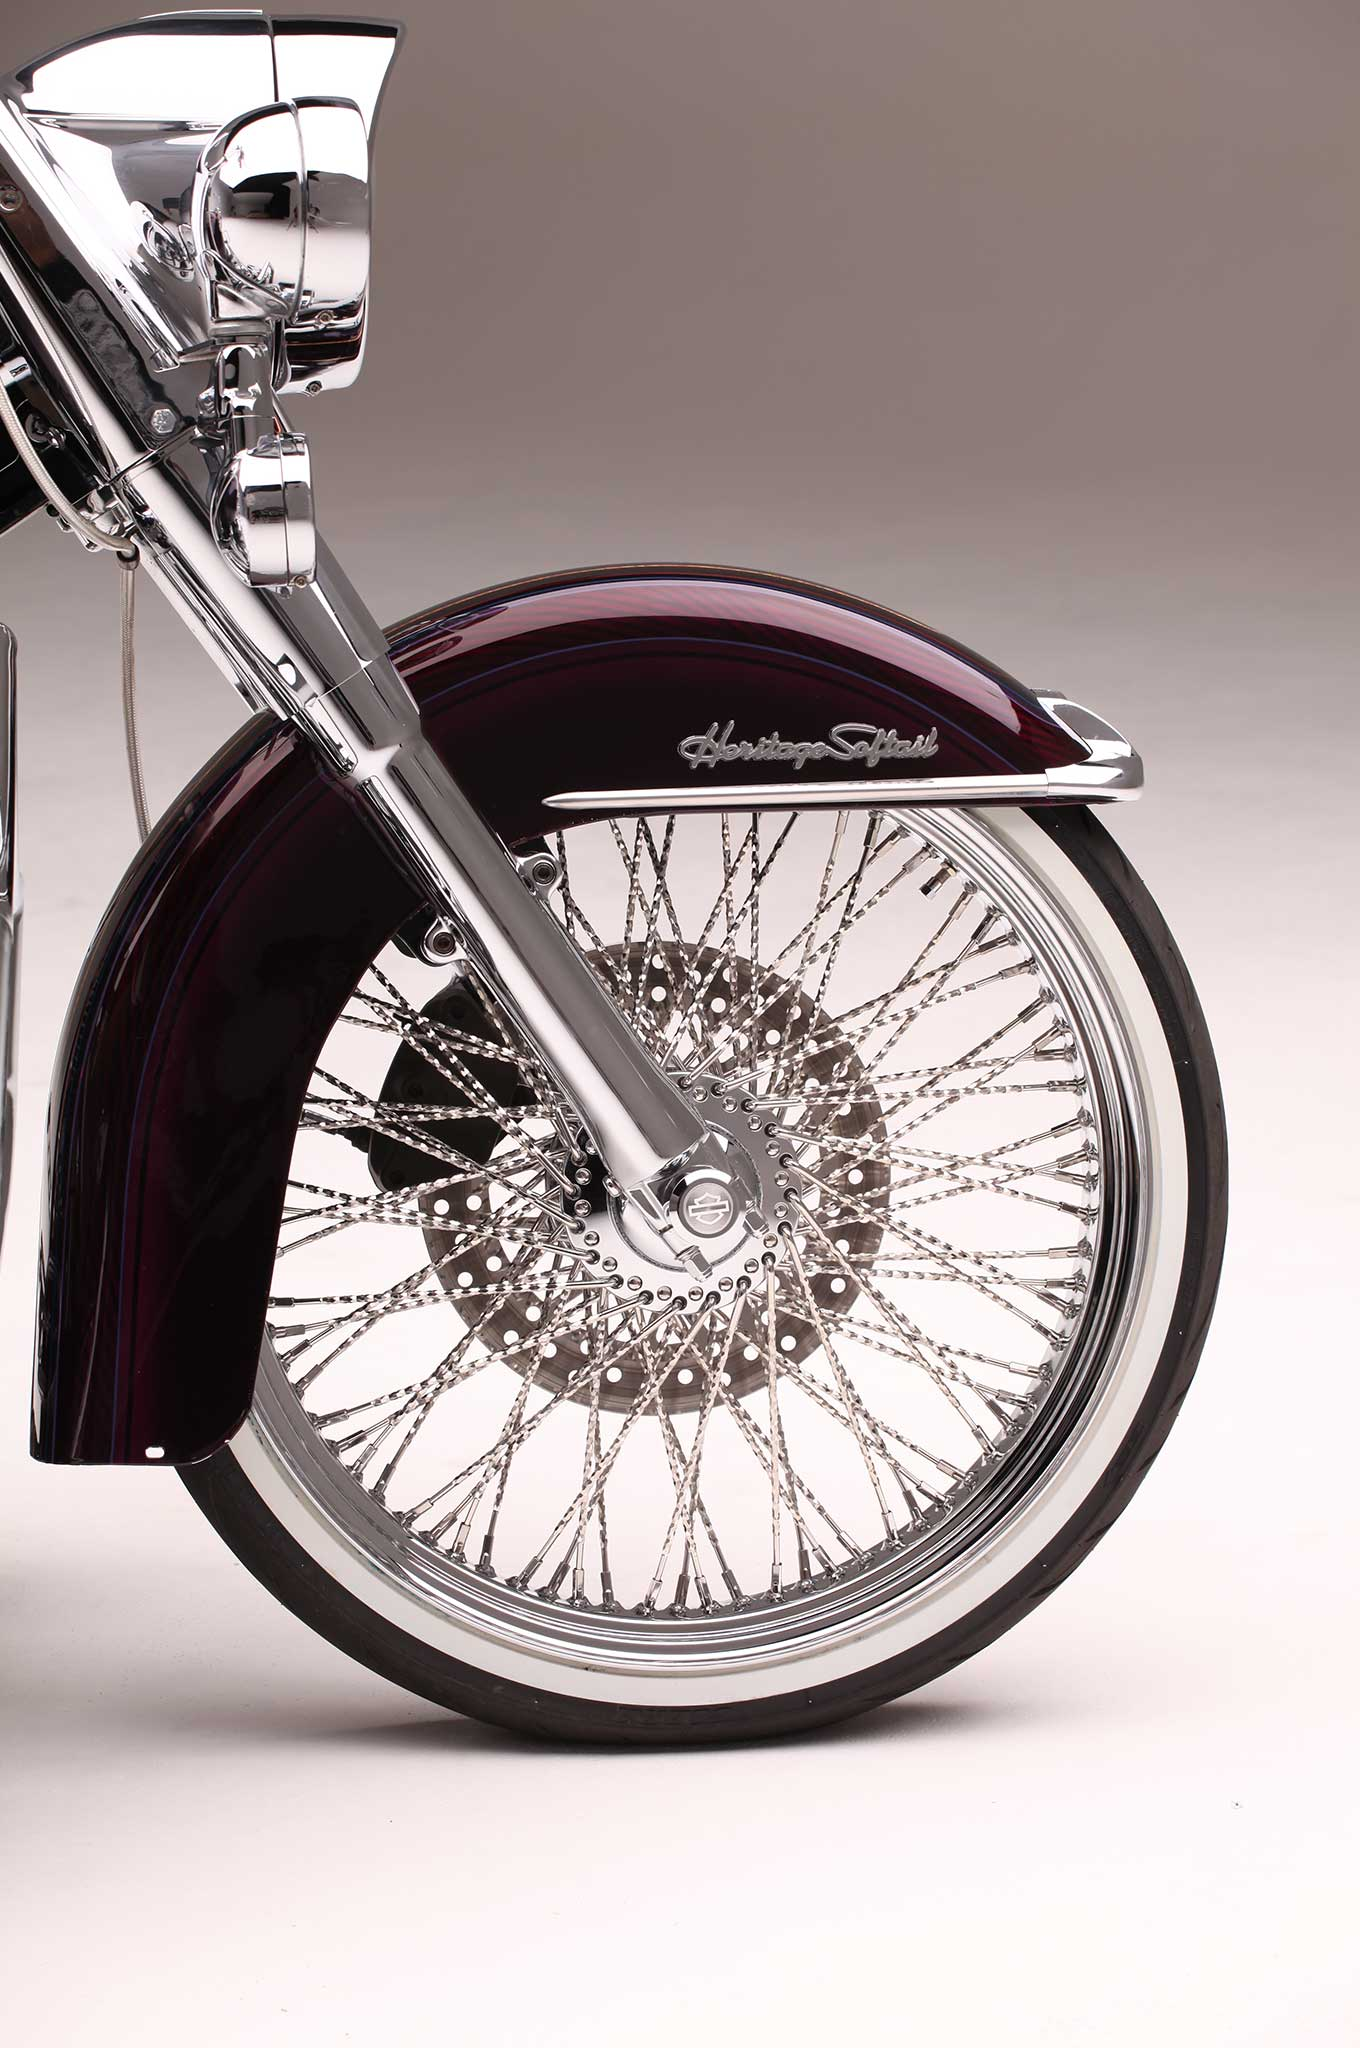 Used Harley Davidson Wheels >> Heritage Softail & Softail Deluxe - Two Harleys, One Painter